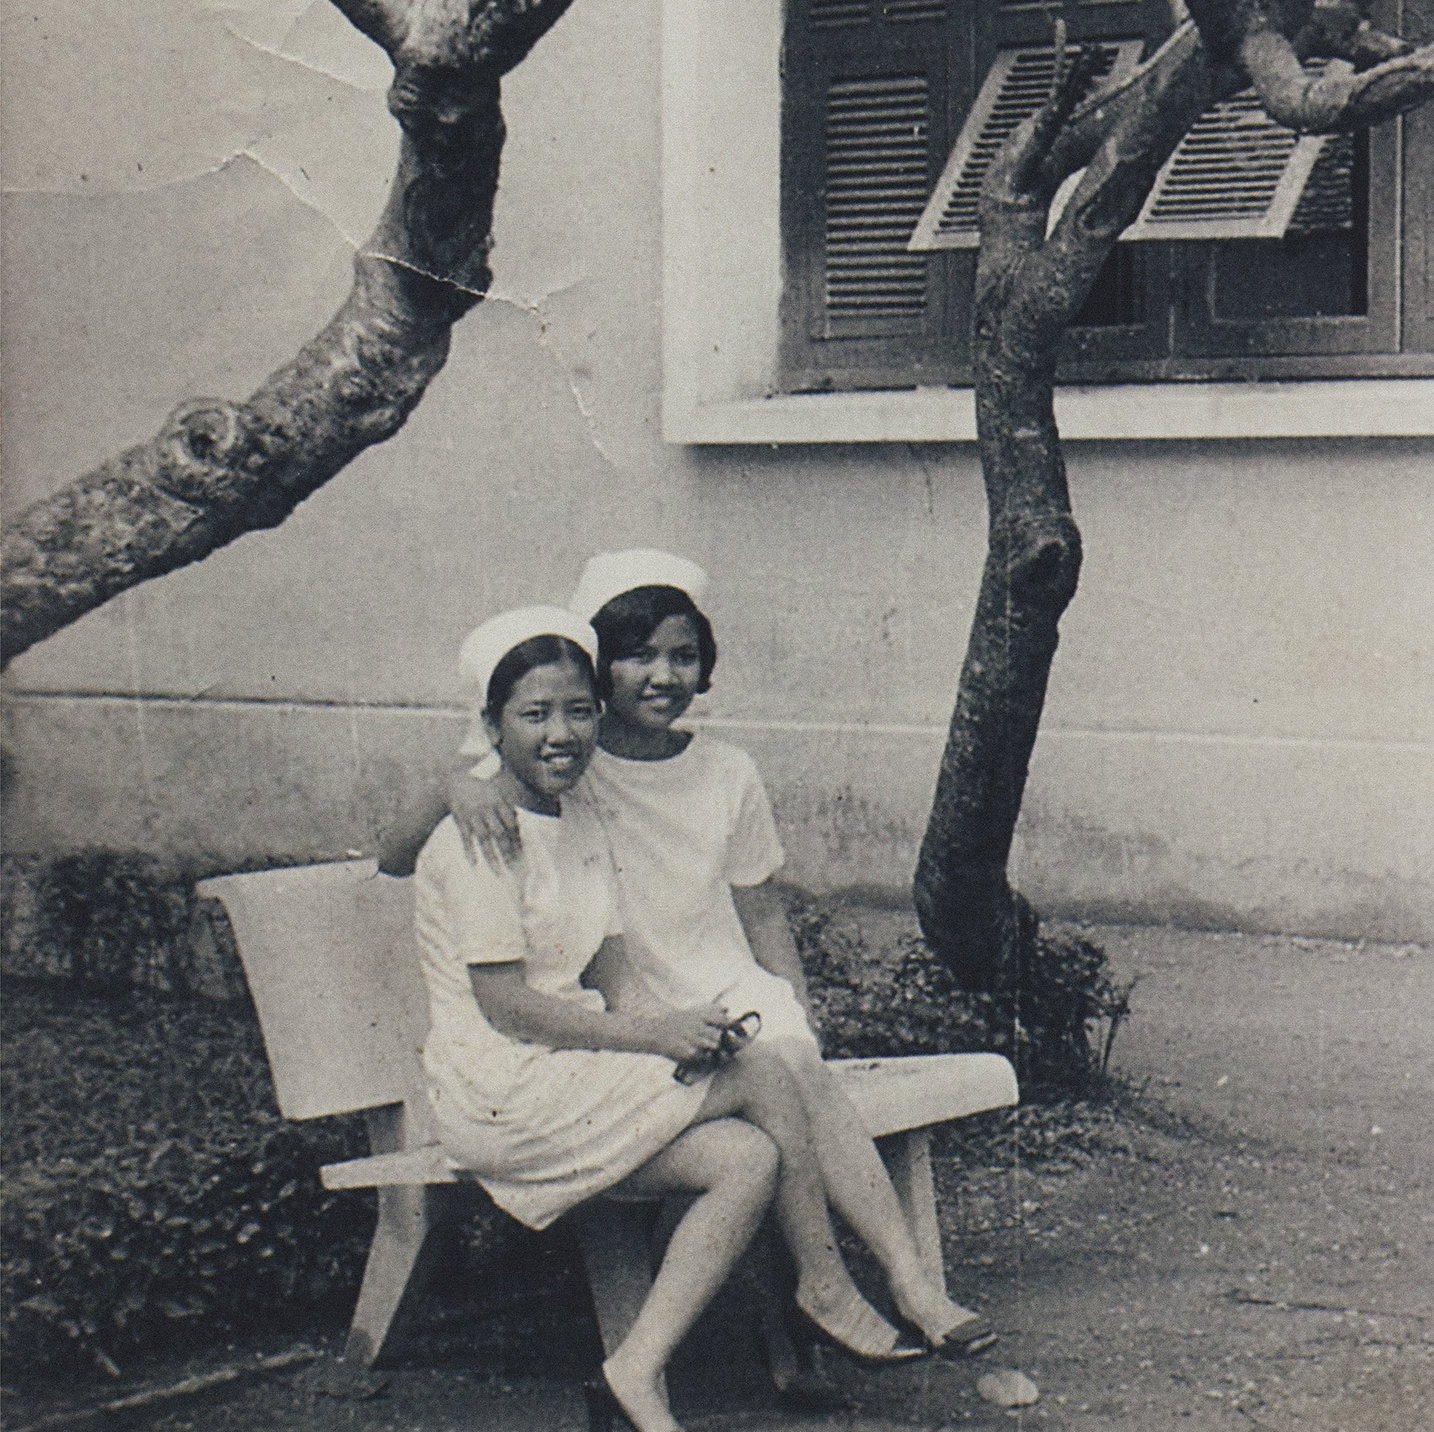 Sepia toned image of Hồng-Ân Trương's mother and her classmate sitting on a bench at 17 years old.